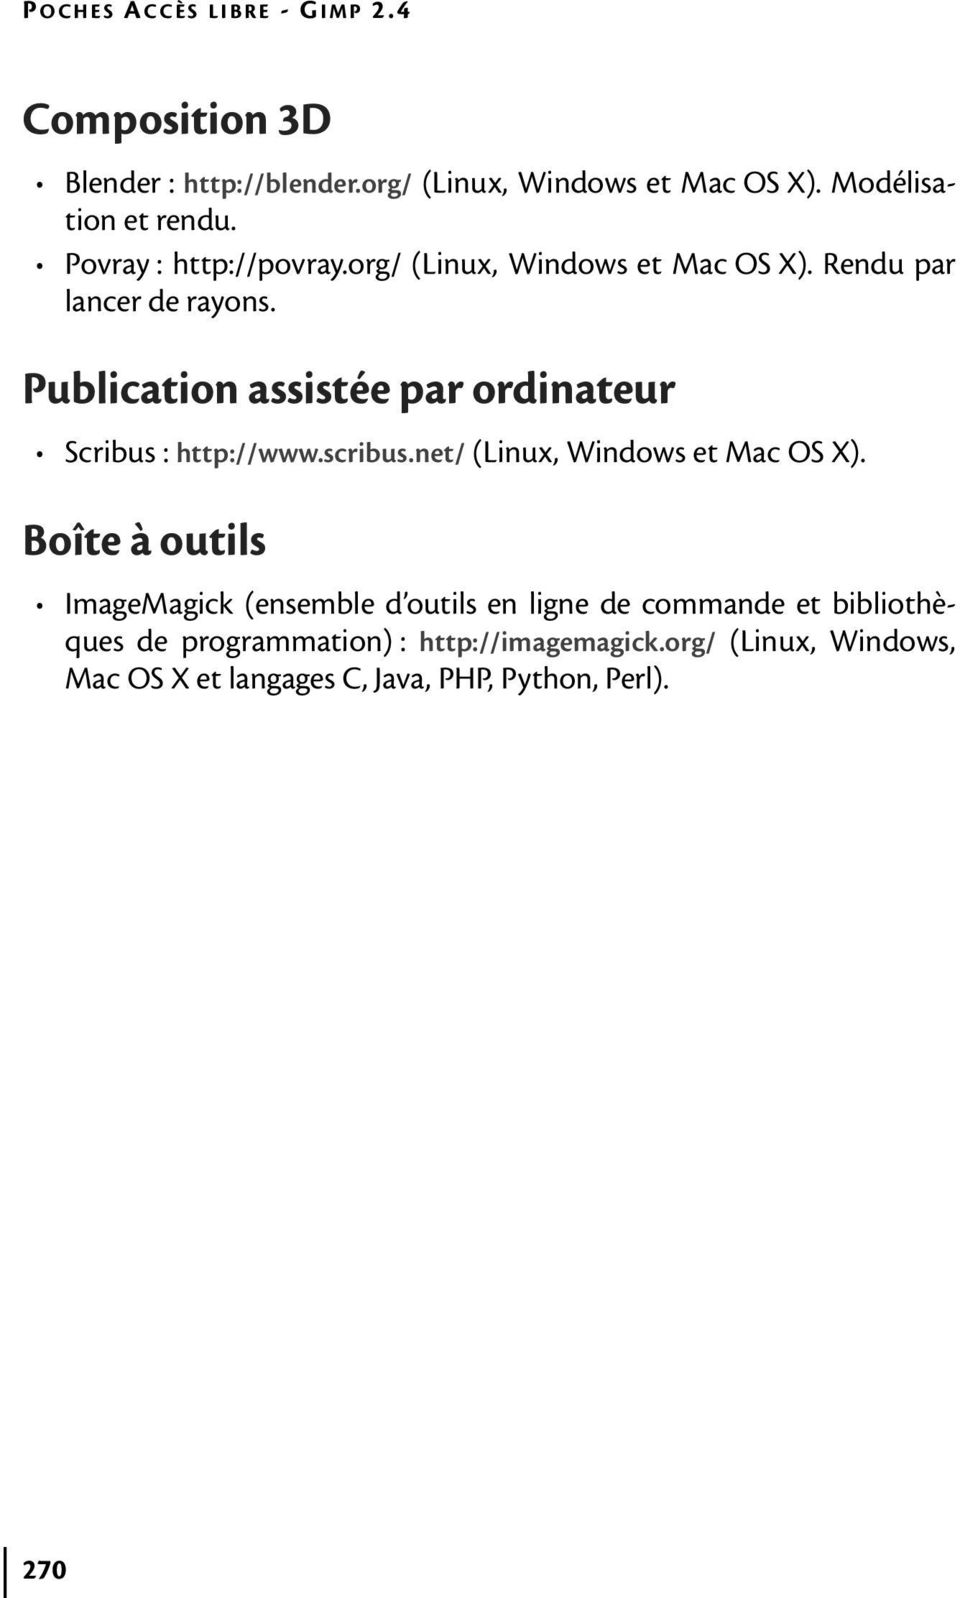 Publication assistée par ordinateur Scribus : http://www.scribus.net/ (Linux, Windows et Mac OS X).